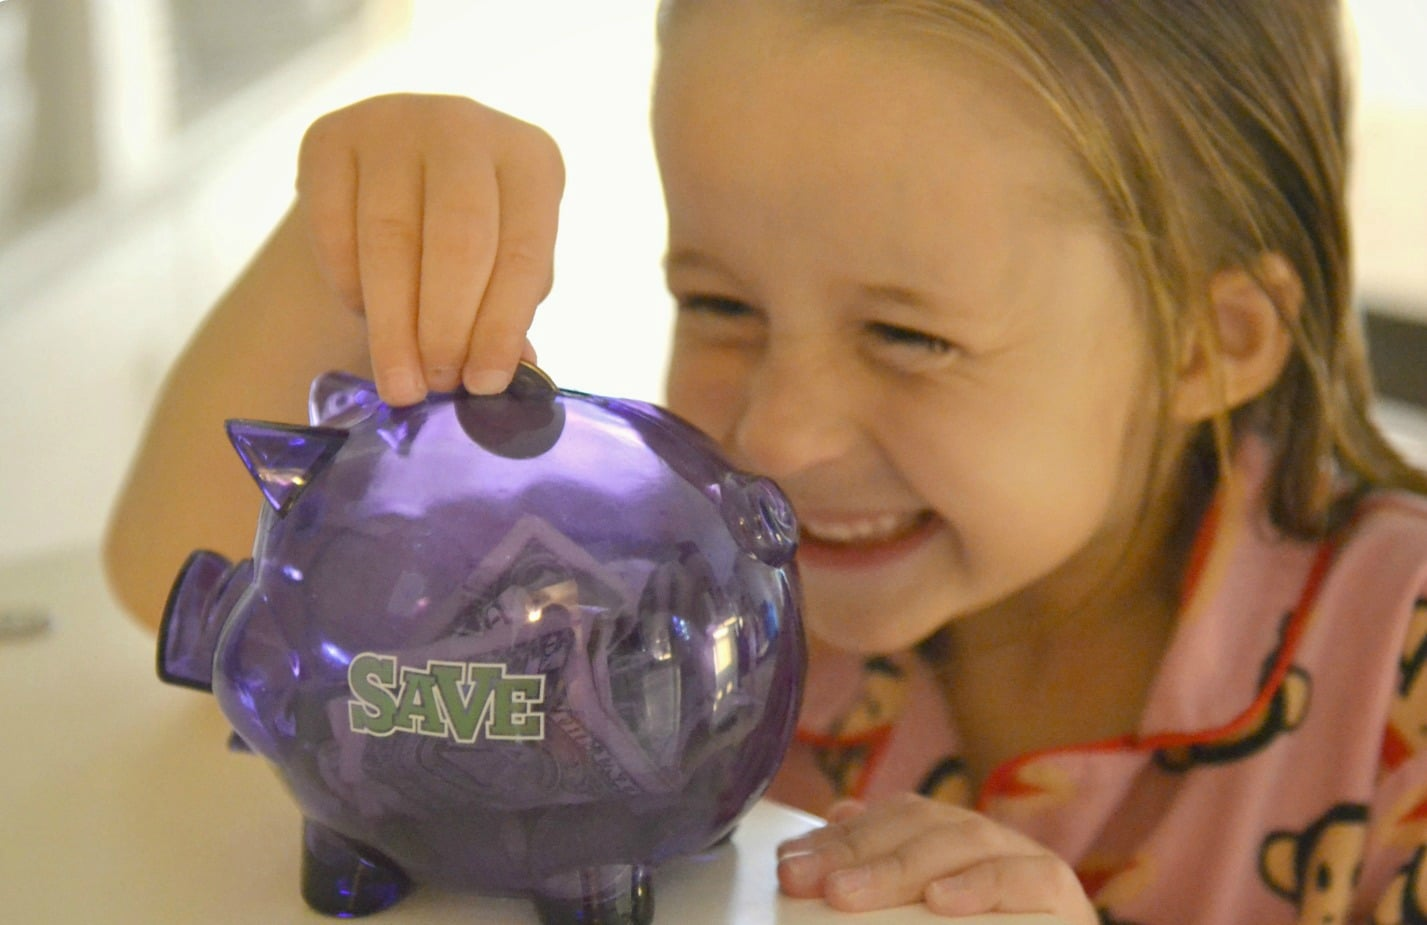 7-things-to-teach-kids-about-money-3